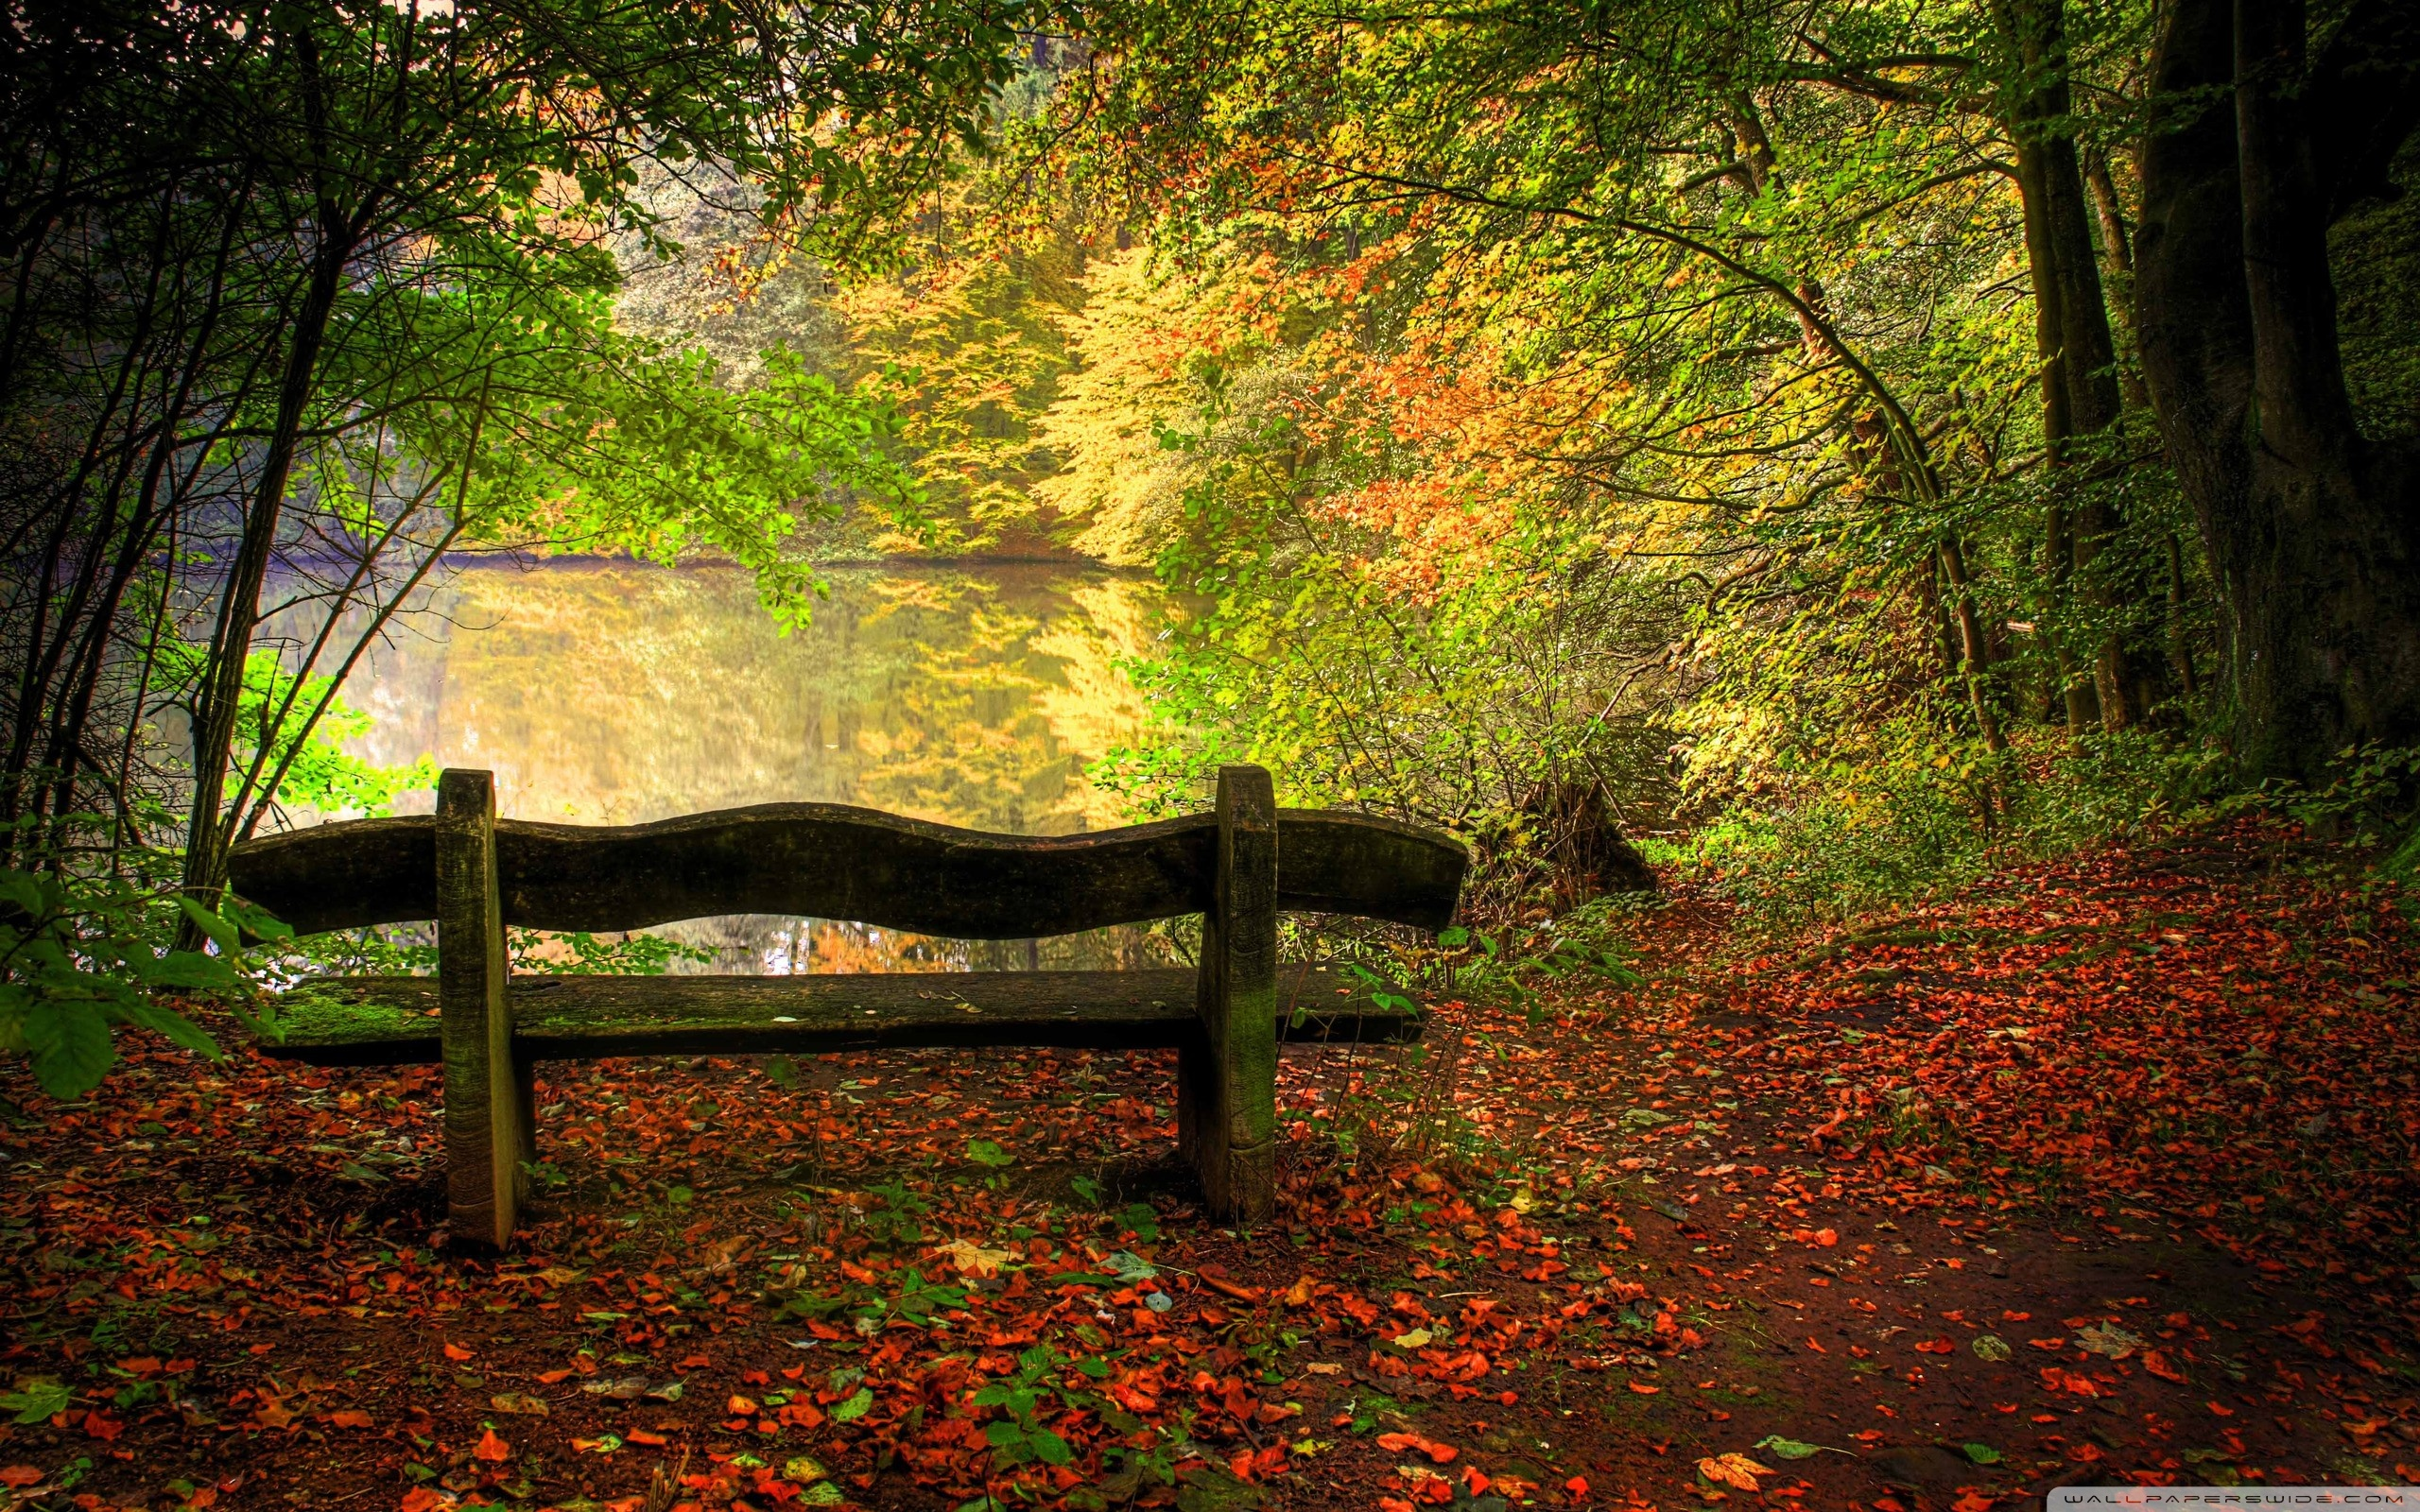 mi9comautumn free wallpaper empty bench in fall scene 93152html 2560x1600